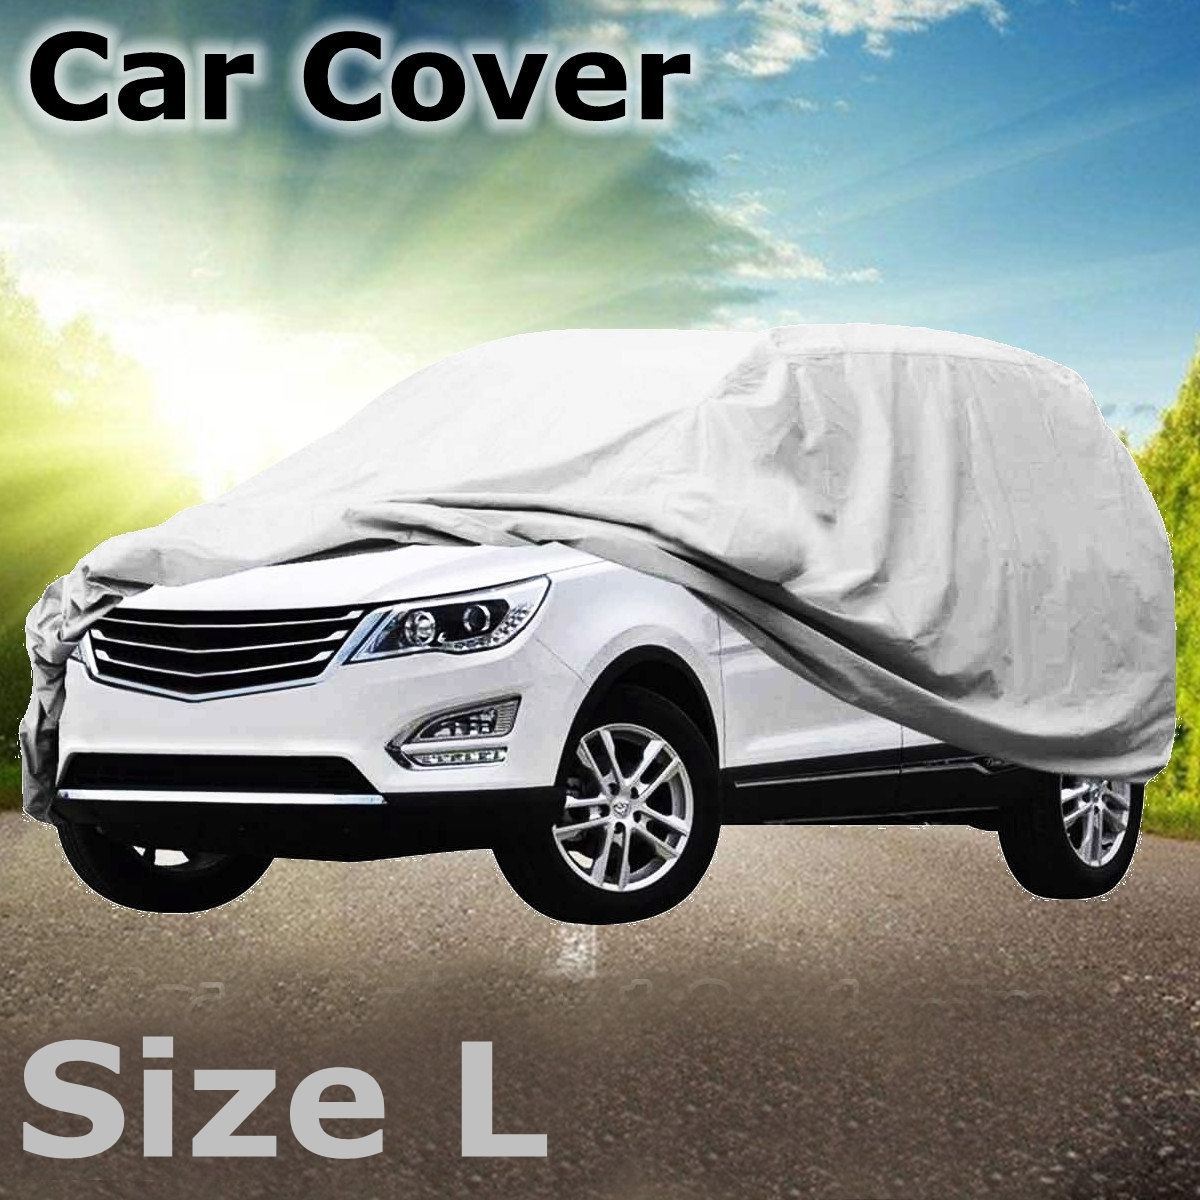 2107759 in SJC SUV Full Car Cover Universal Fit Up to Sedan//Car Automobile Cover TC Silver Waterproof Protection for Dust Rain Sun Snow Outdoor Auto Cover